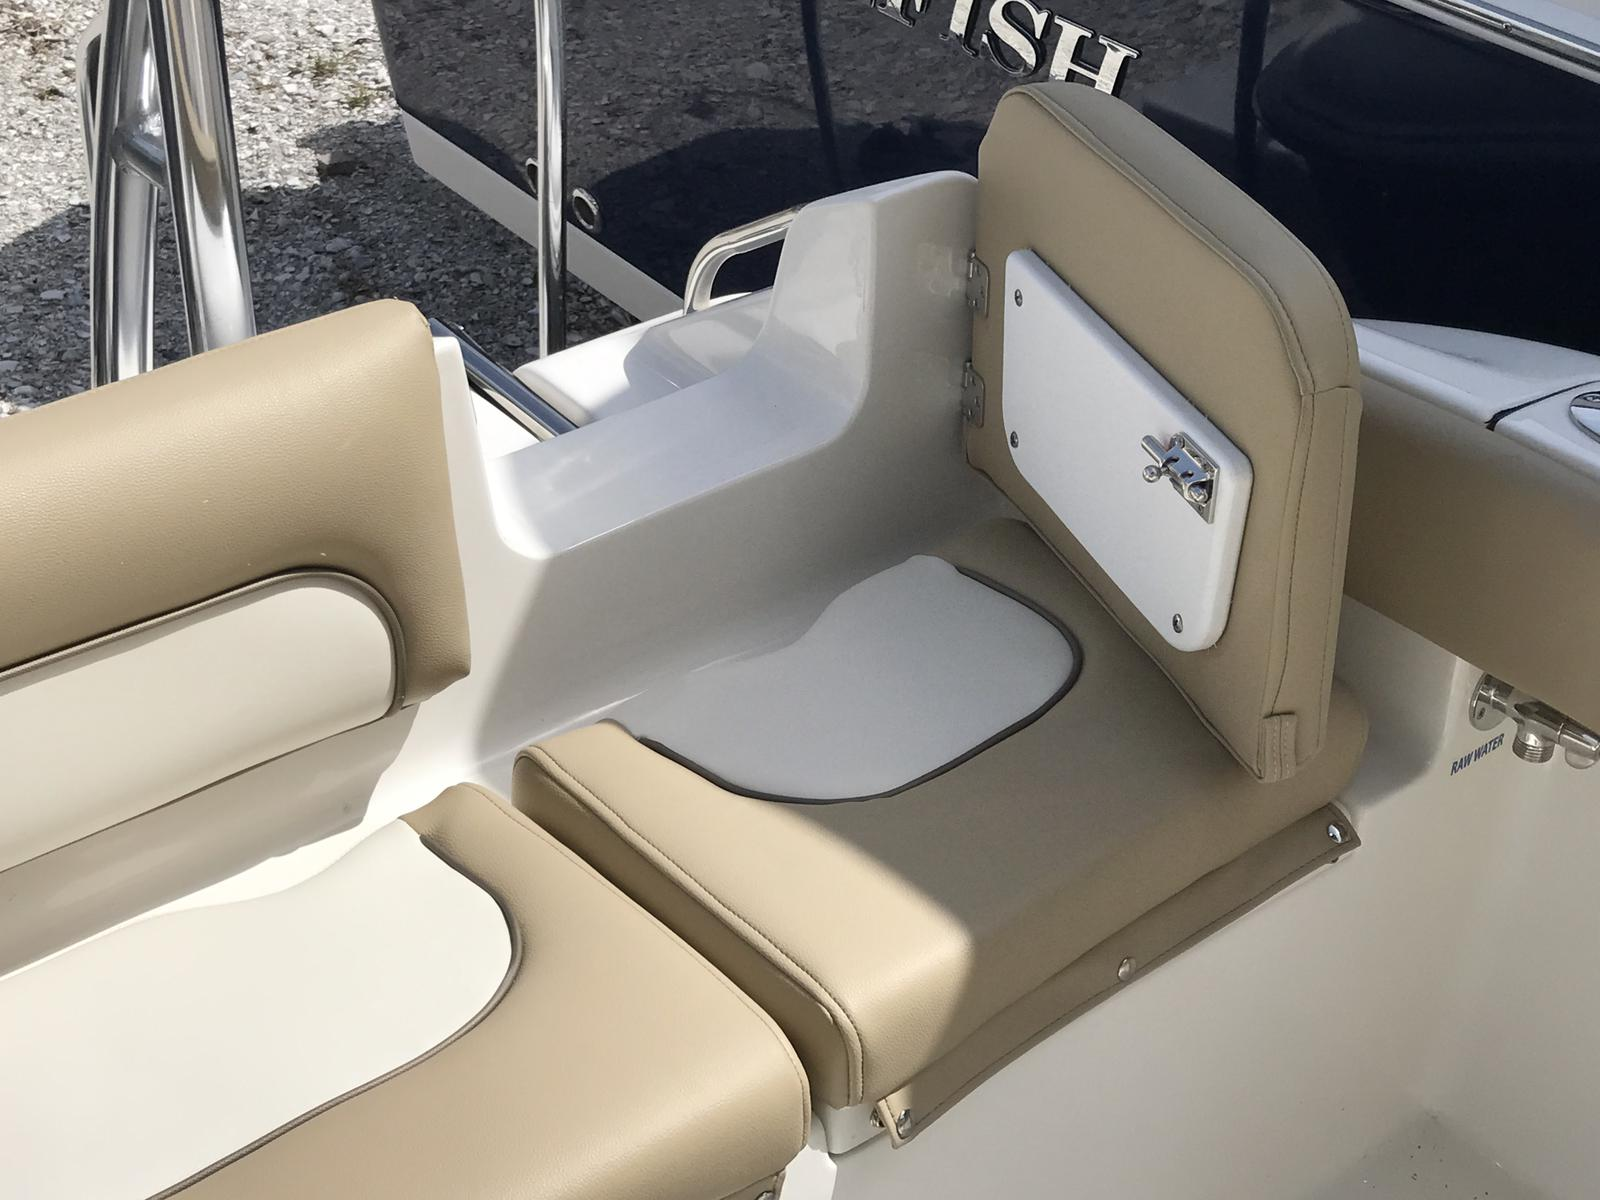 NEW 2018 Key West Boats, Inc. 219 FS - Sara Bay Marina